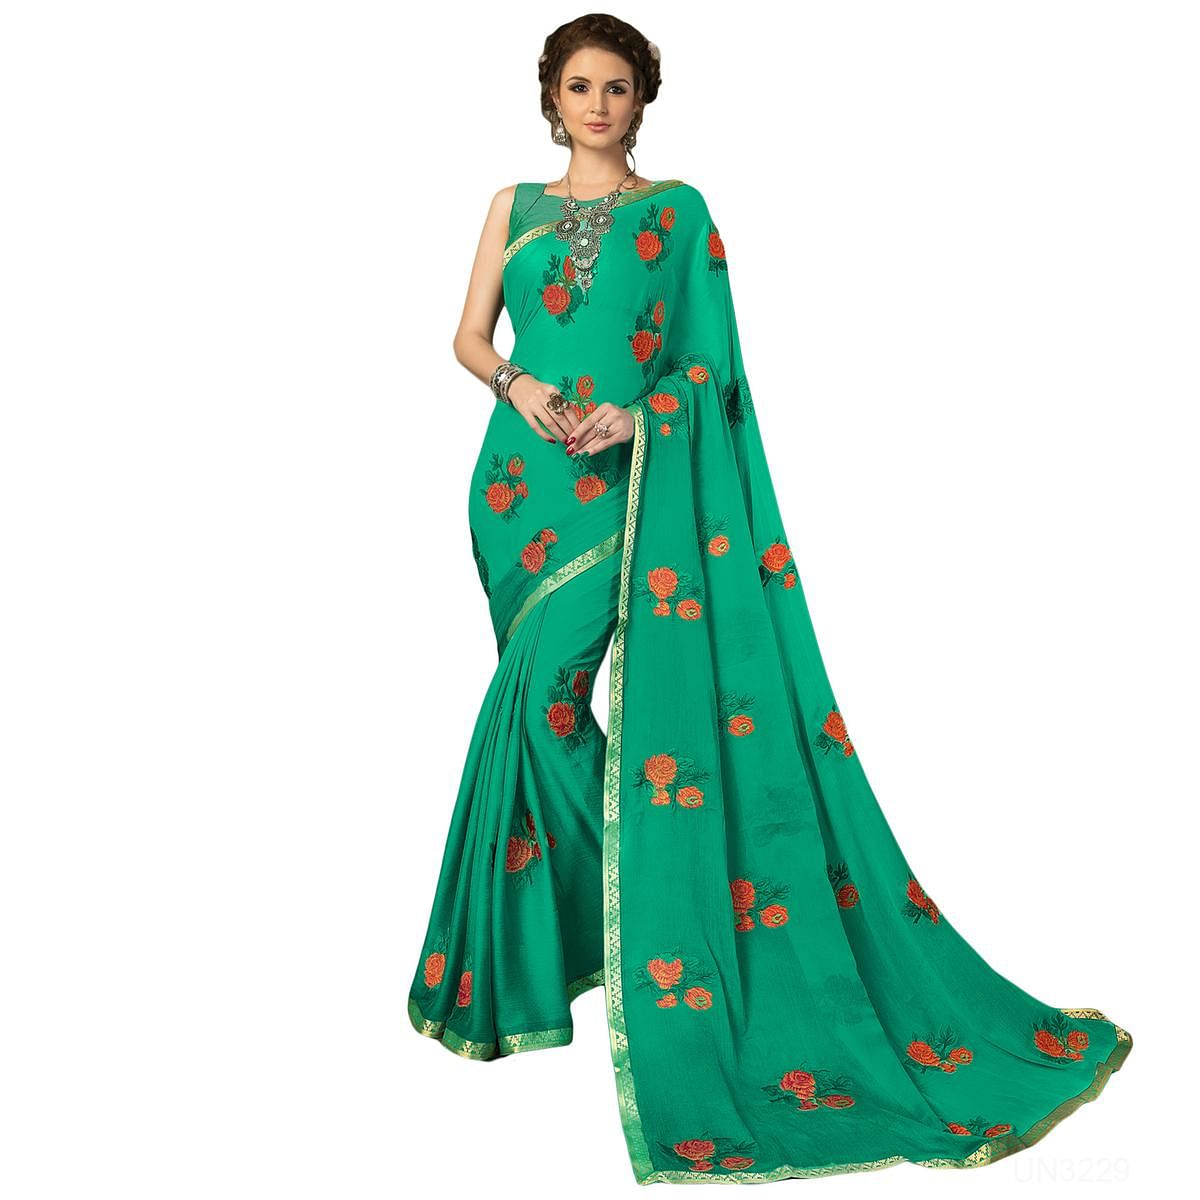 Glowing Aqua Green Colored Partywear Embroidered Chiffon Saree